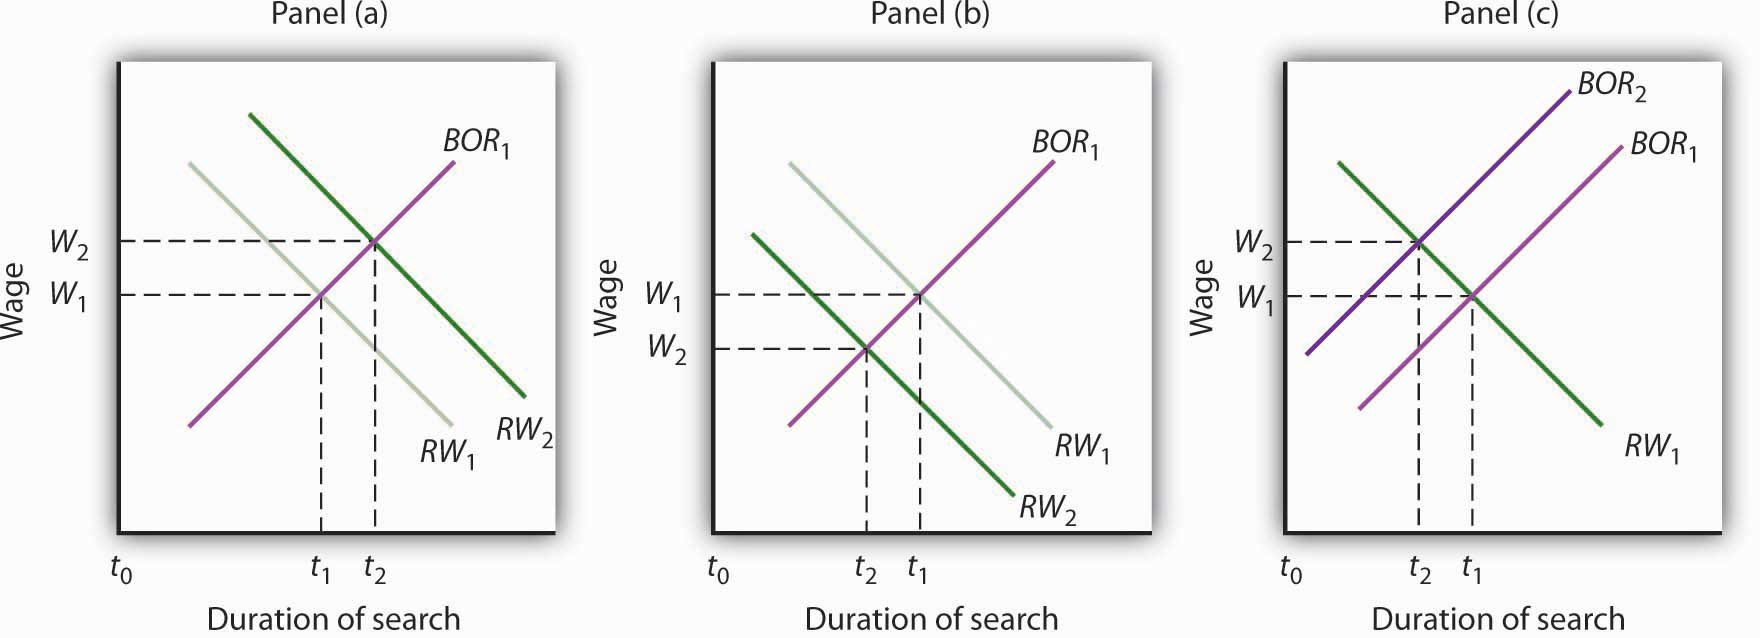 Duration of search graphs